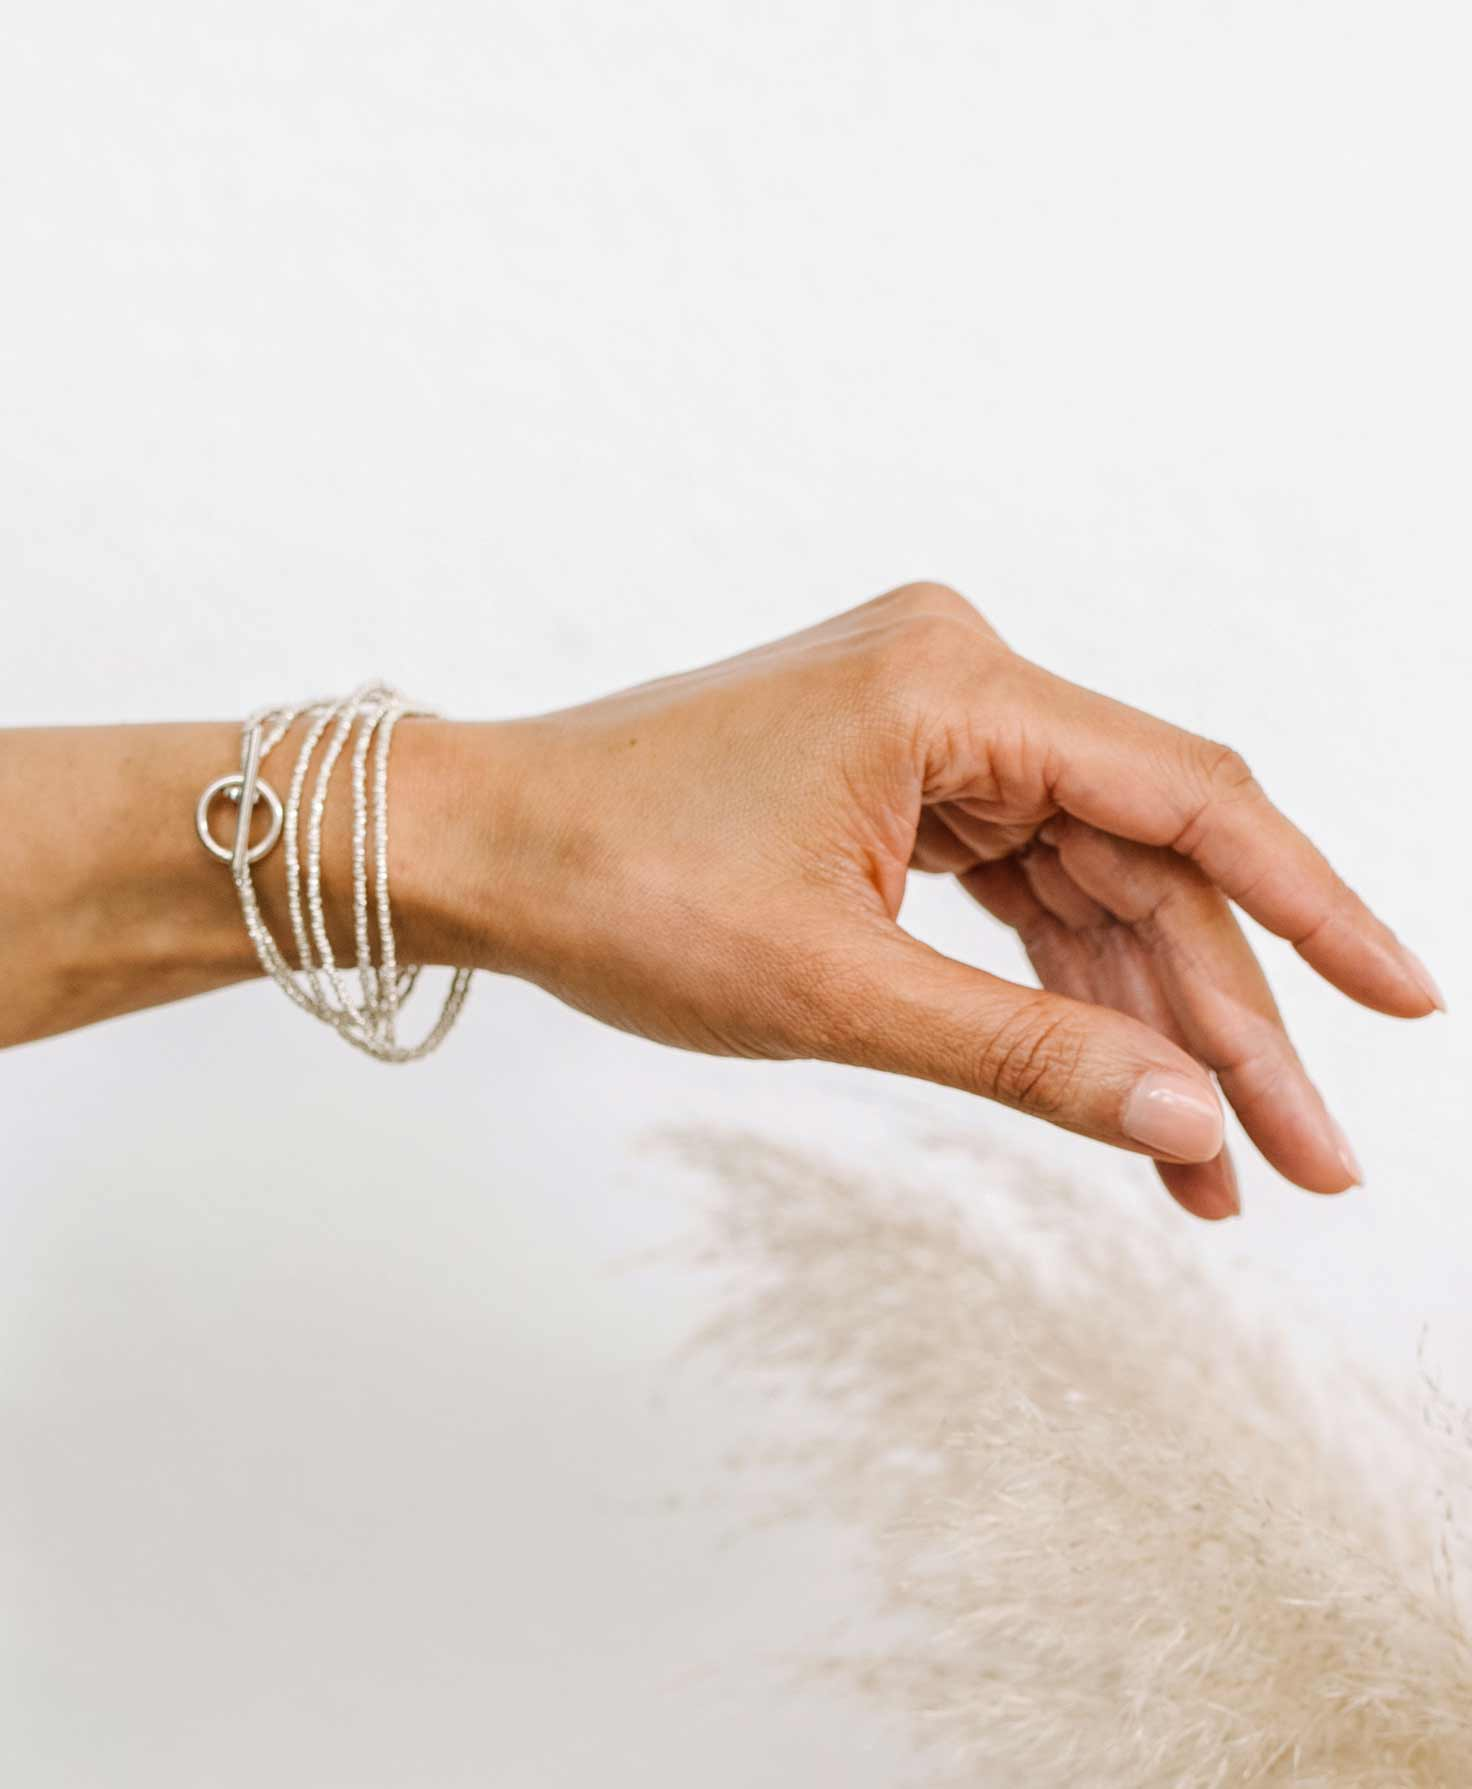 A woman's arm is shown wearing the Bichena Bracelet. The bracelet wraps around her wrist six times for a layered look. The silver metal beads catch the light and shine.